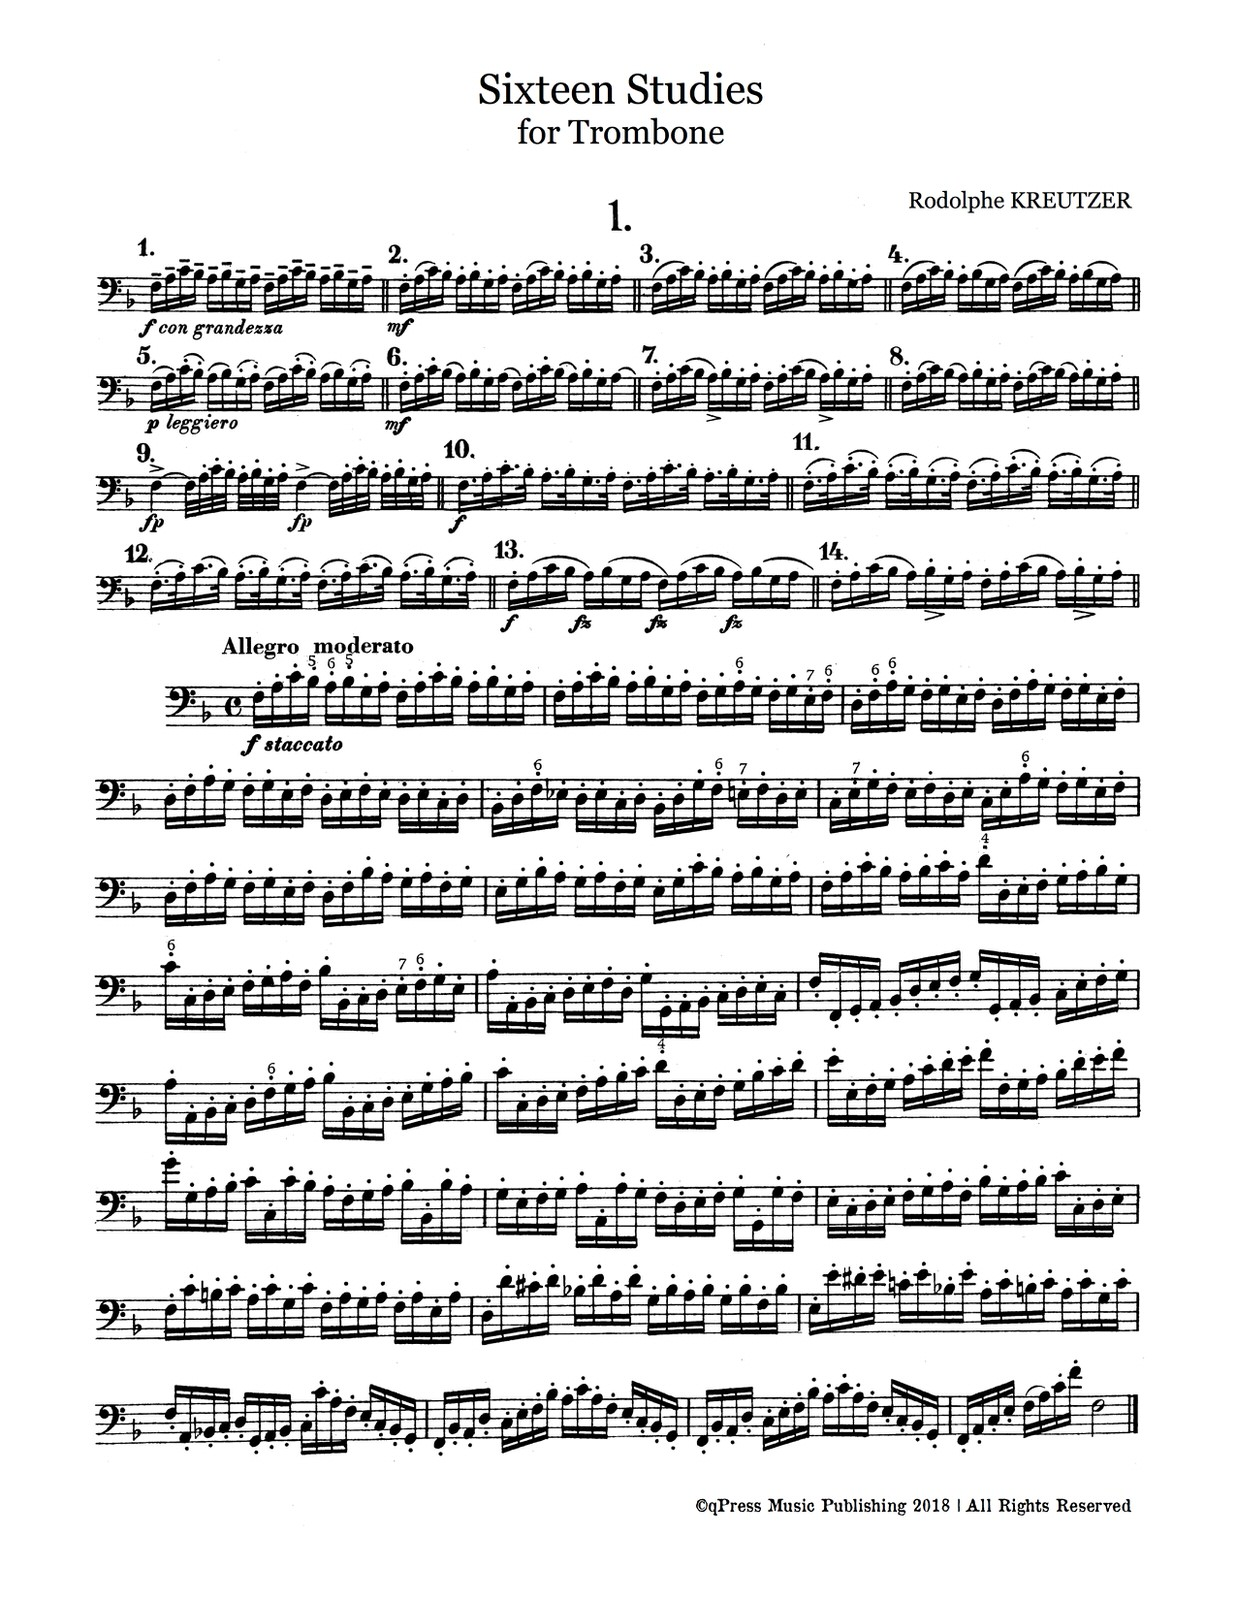 Kreutzer, Rodolphe, 16 Studies for Trombone-p03